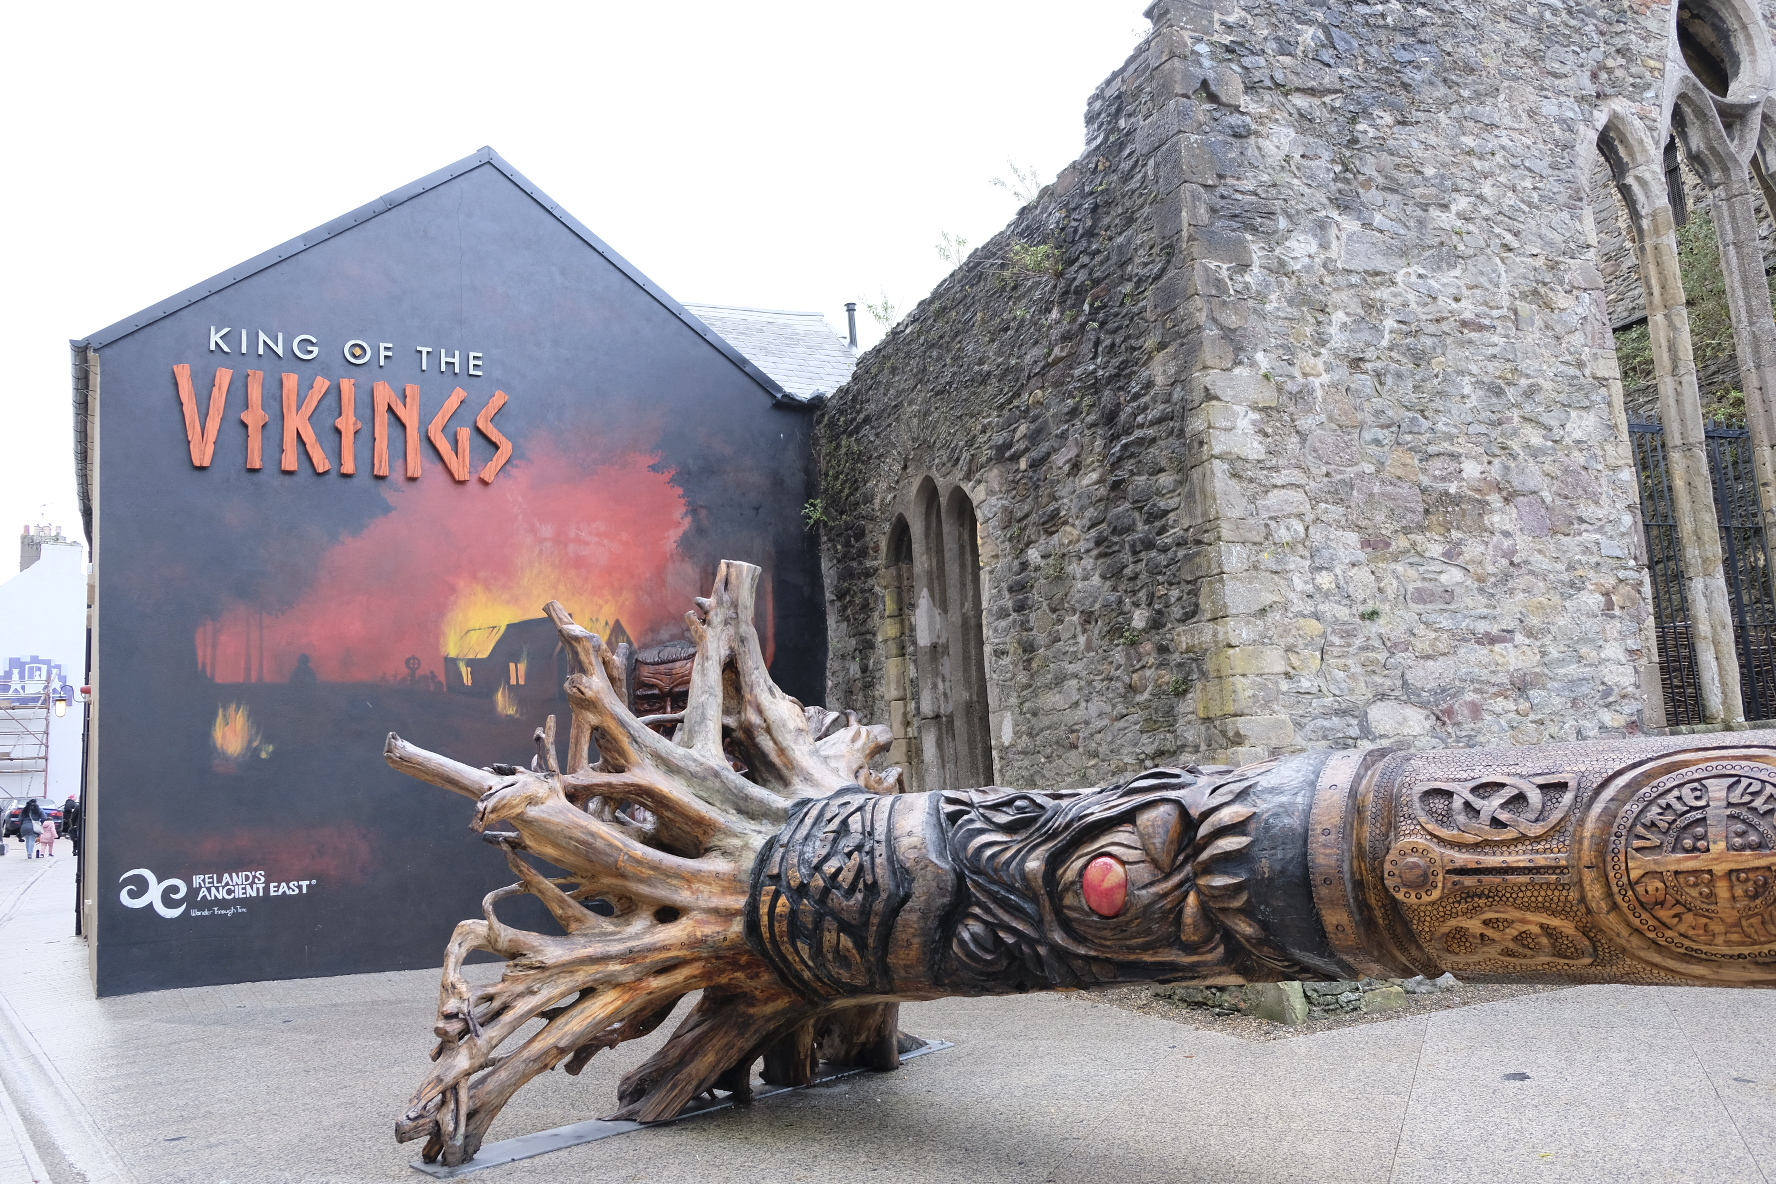 King of the Vikings virtual reality exhibition and the world's largest Viking sword, carved on a fallen tree  [© Paul Wheatley]